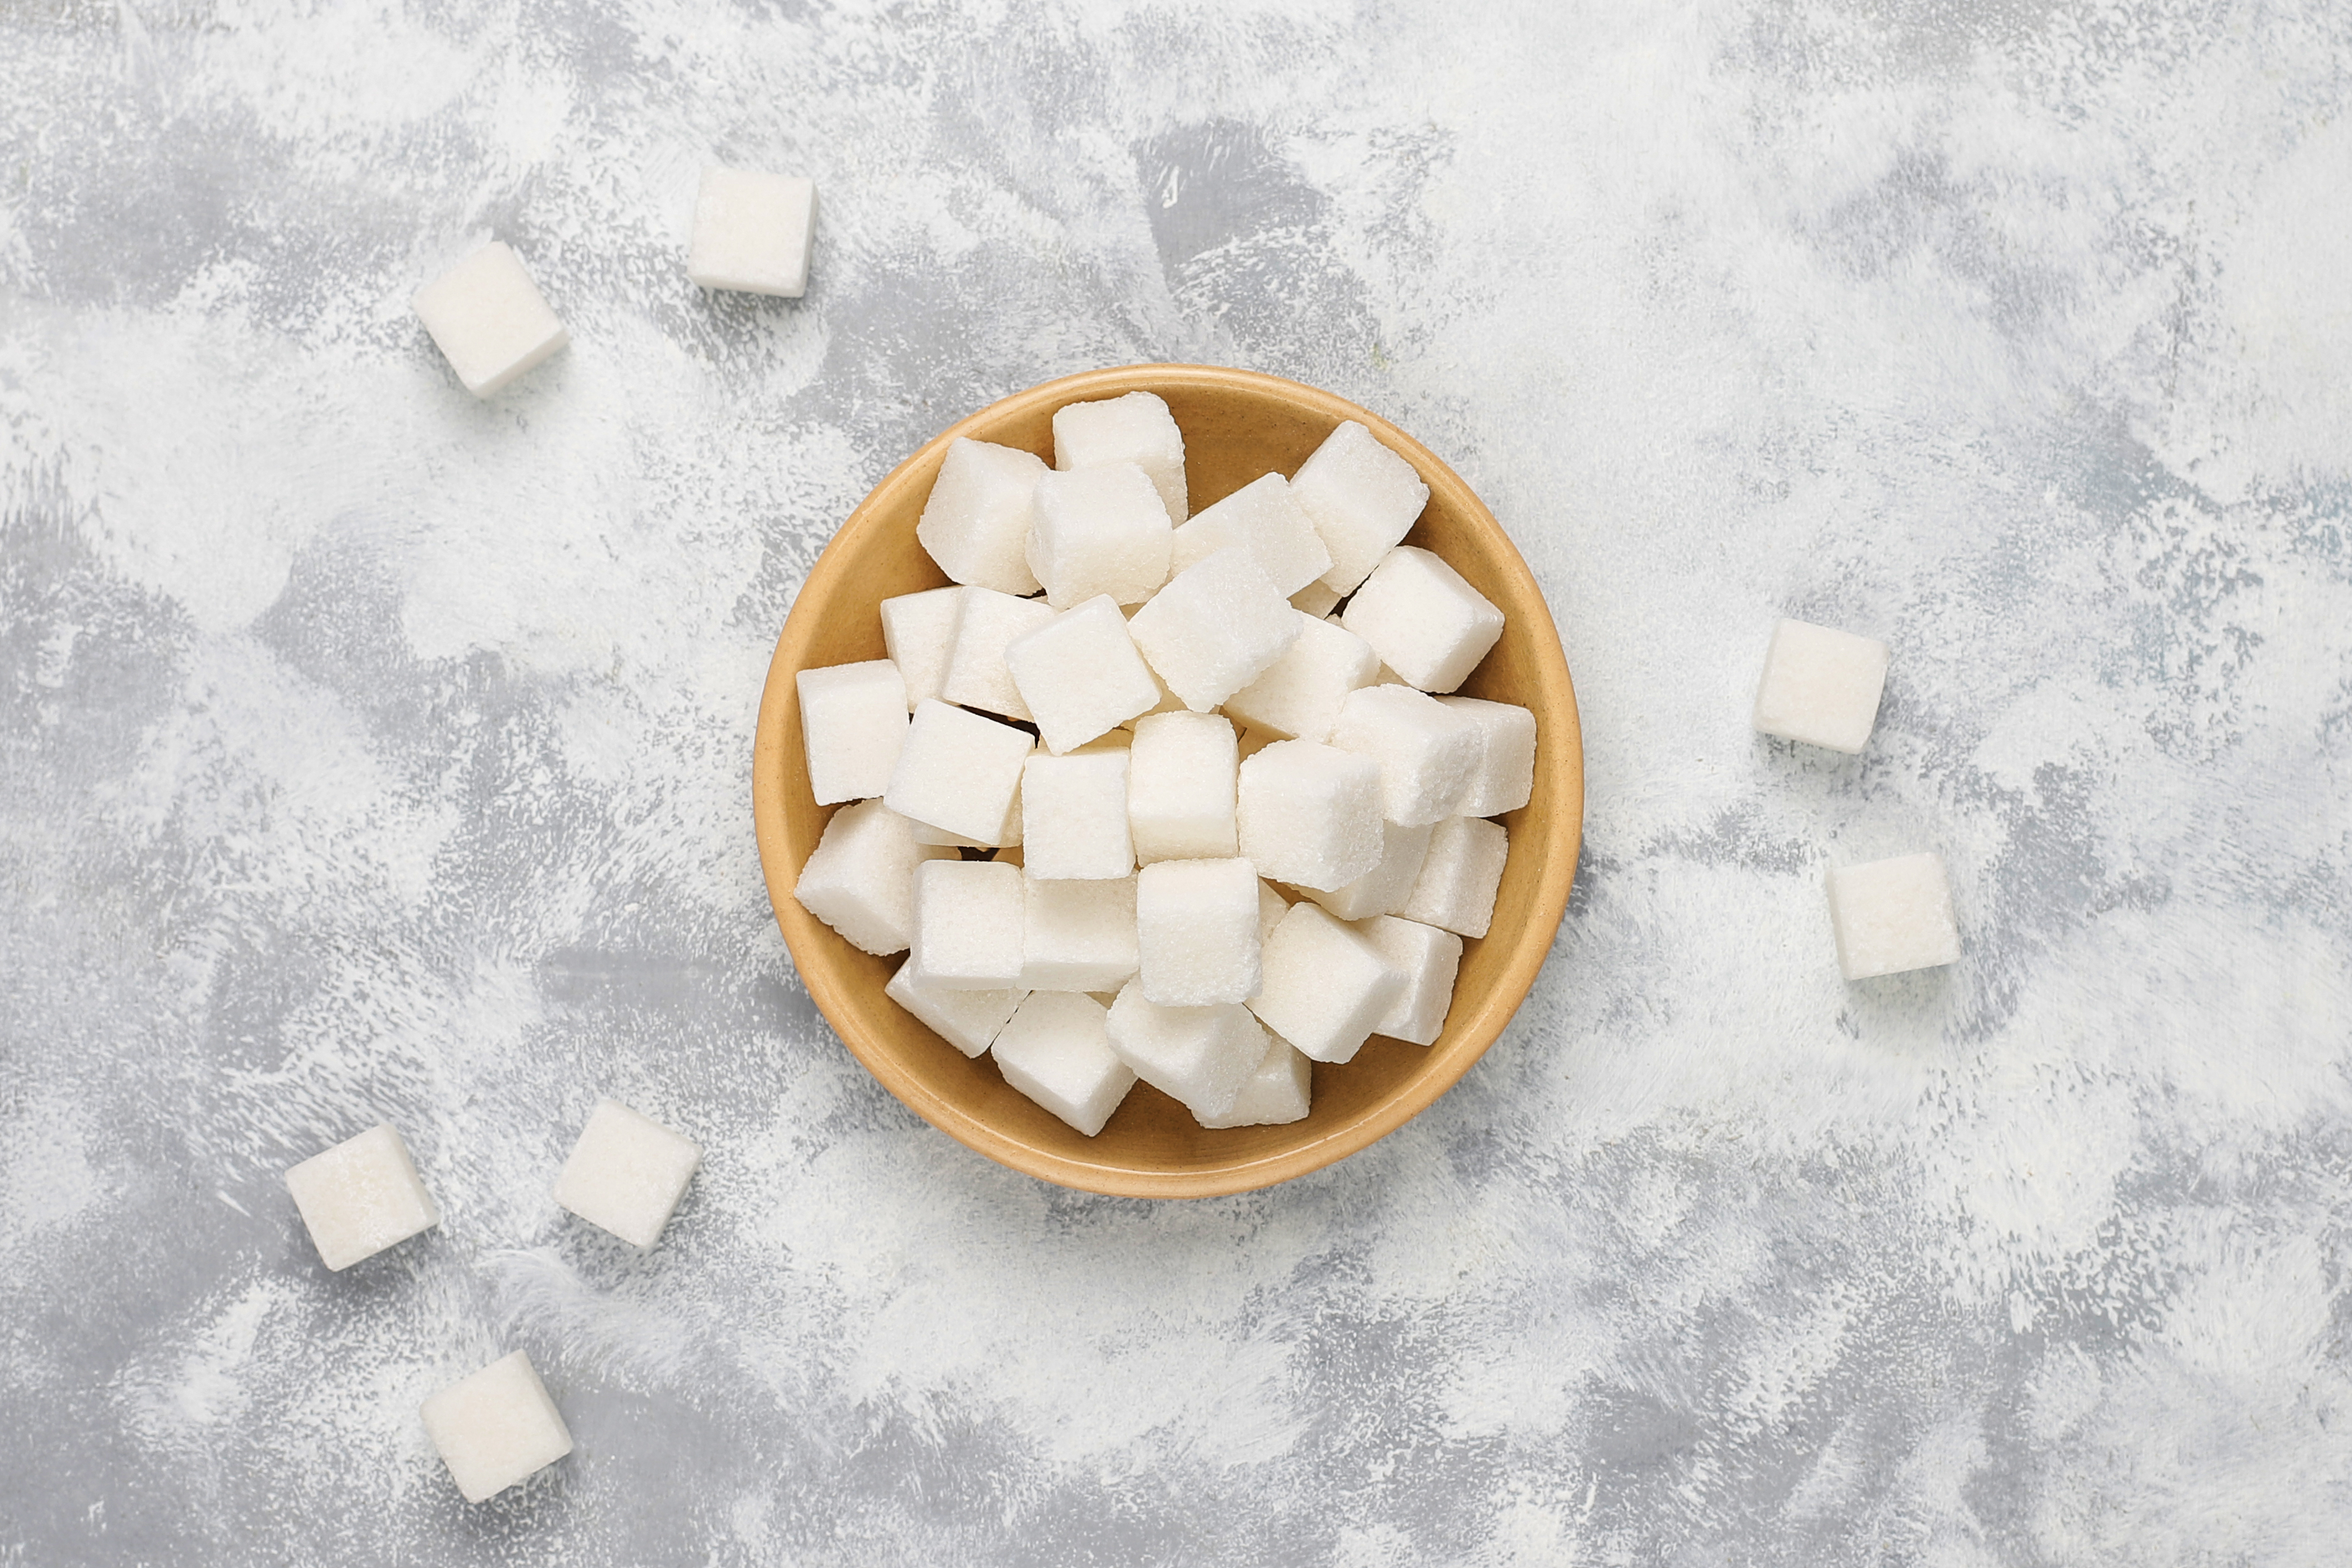 White sugar cubes on concrete background,top view